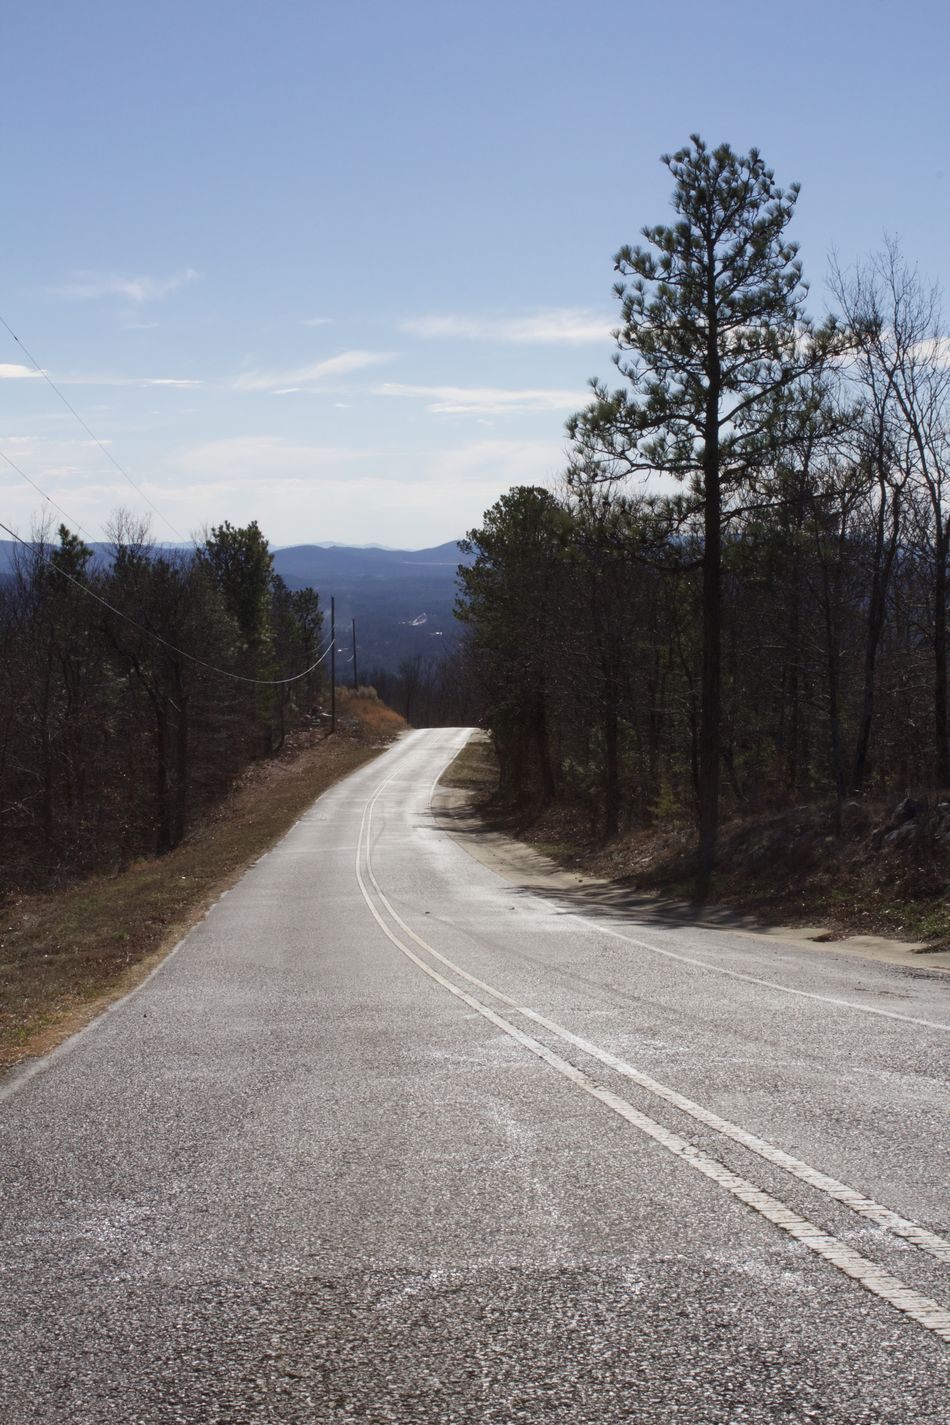 """""""The Way Down"""" / Jacksonville, Alabama Asphalt Beauty In Nature Empty Road Landscape Mountain Natural Gradient Nature No People Outdoors Road Scenics Sky Winding Road"""